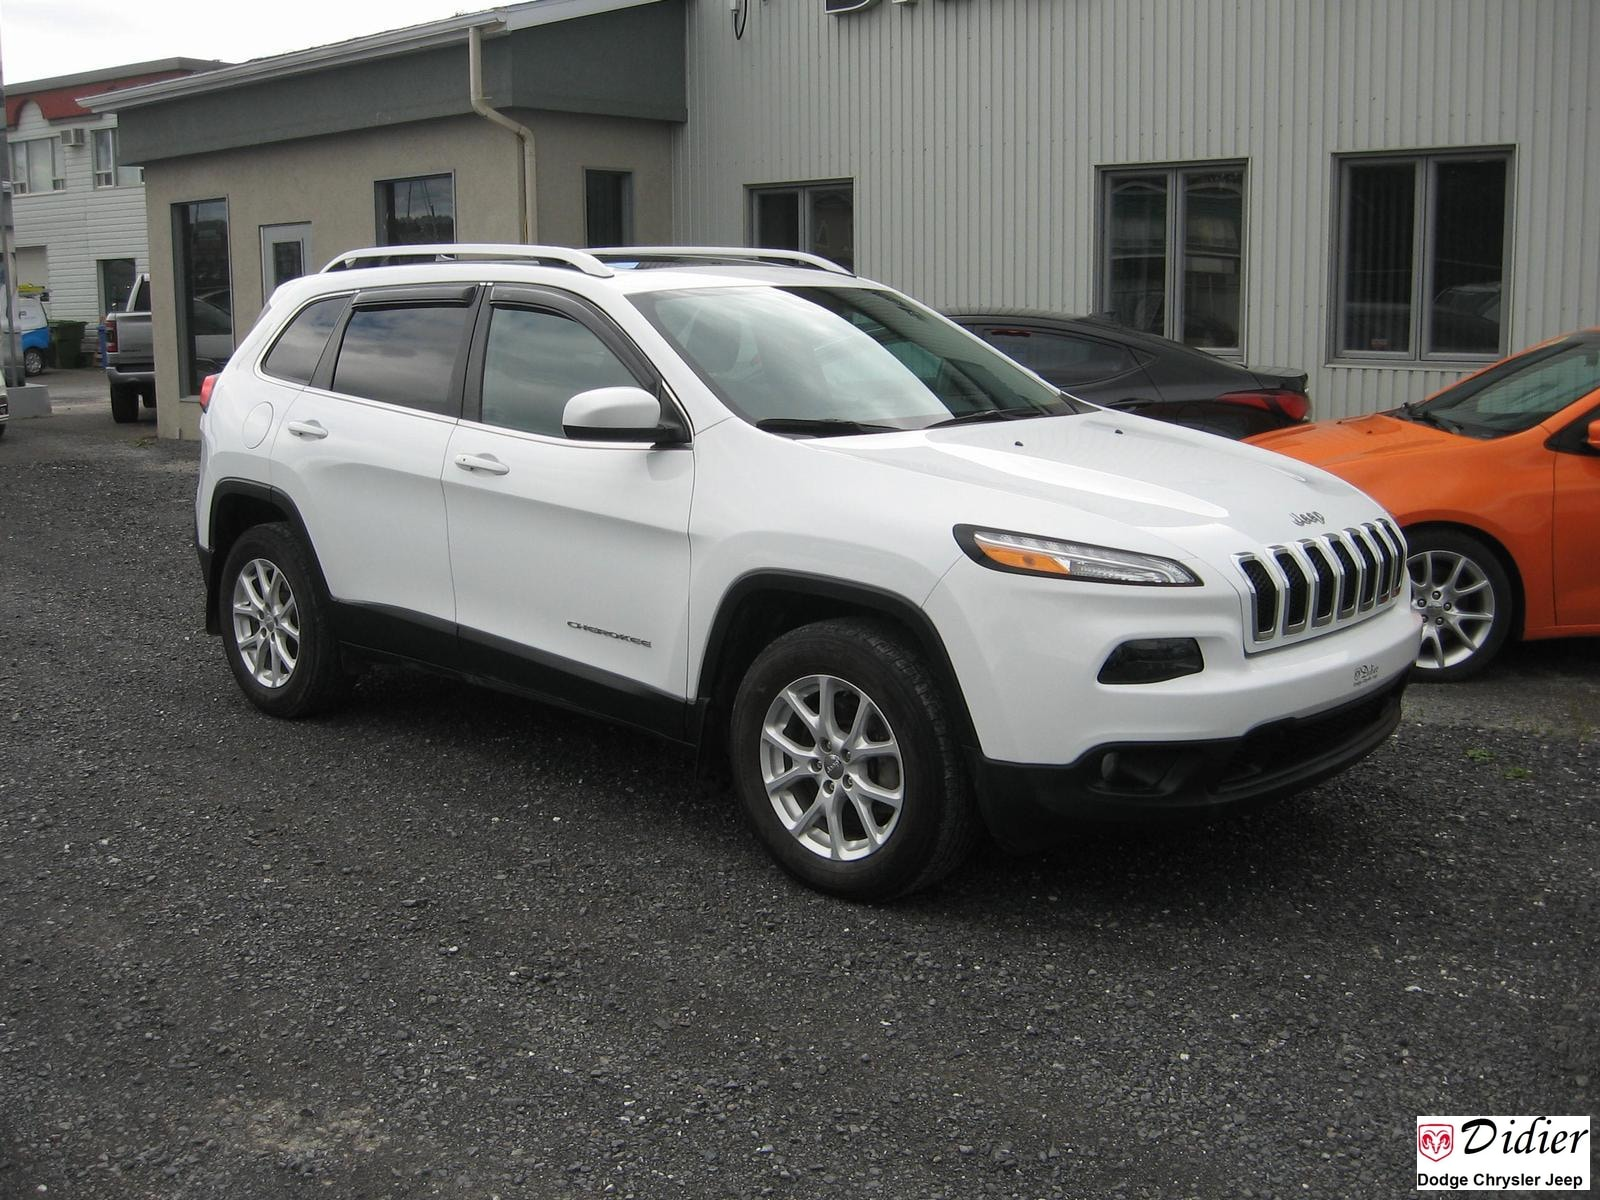 2016 Jeep Cherokee Edition Notth 4X4 North 4x4 Véhicule utilitaire